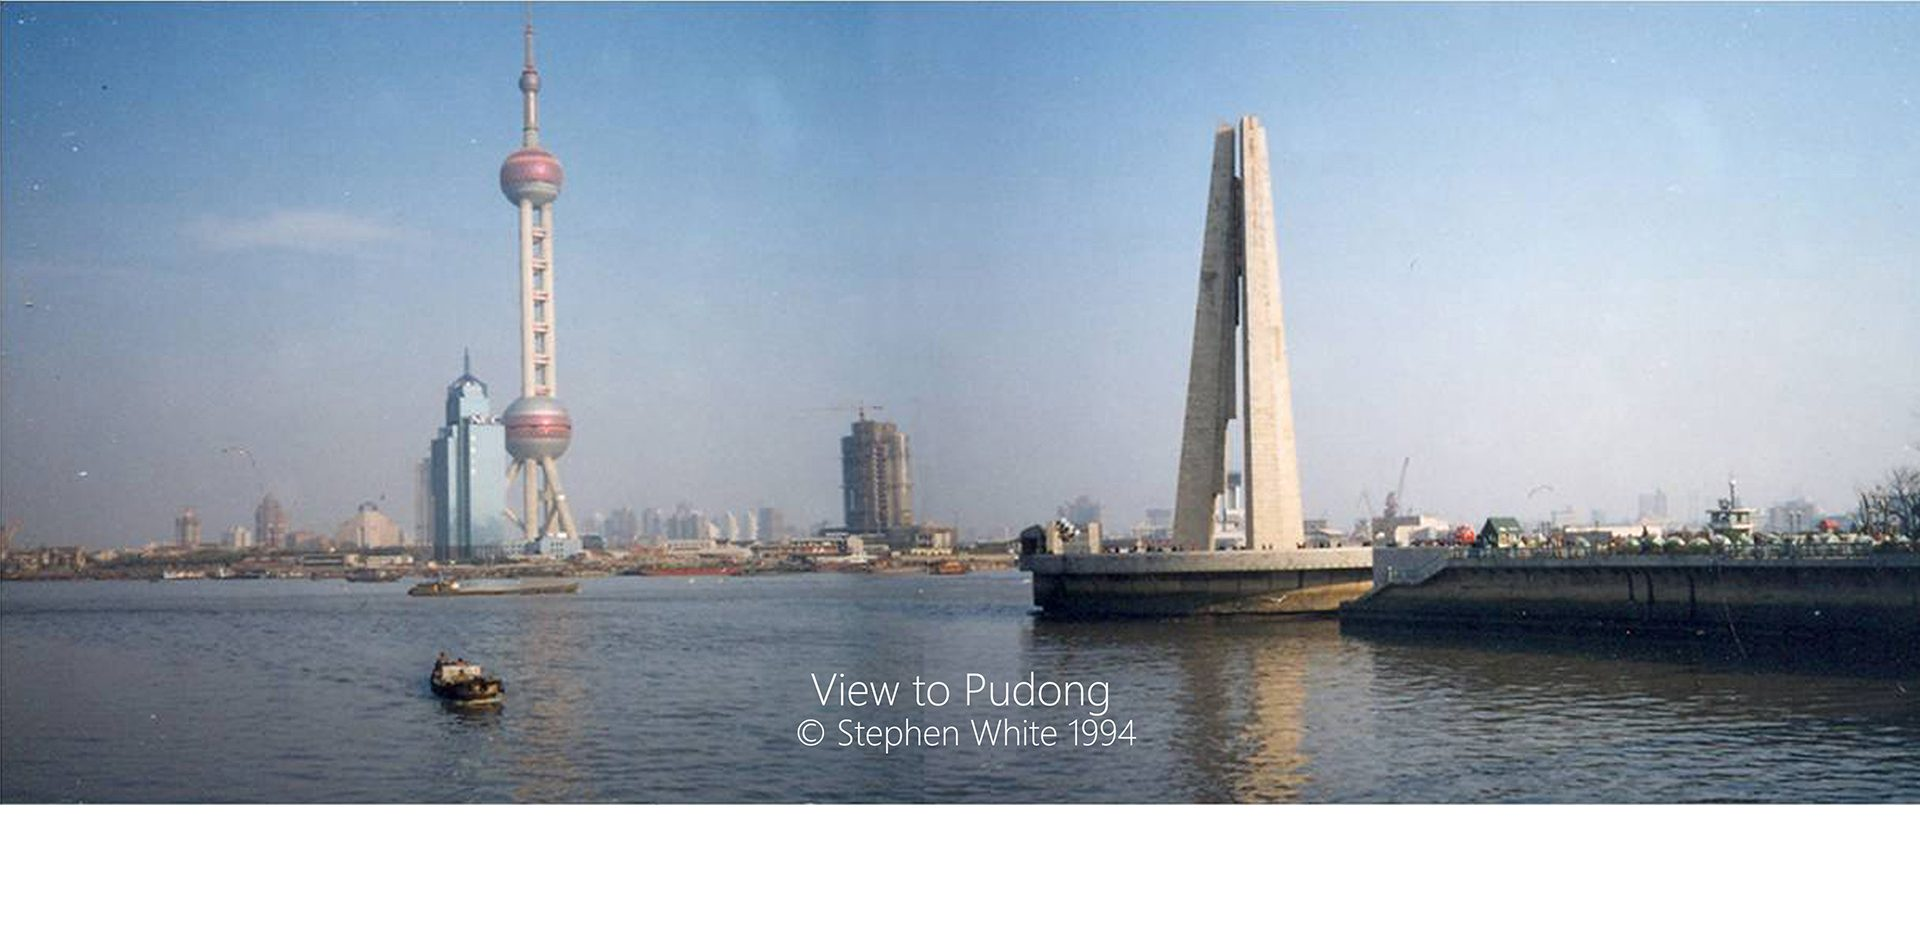 view to Pudong - the early years